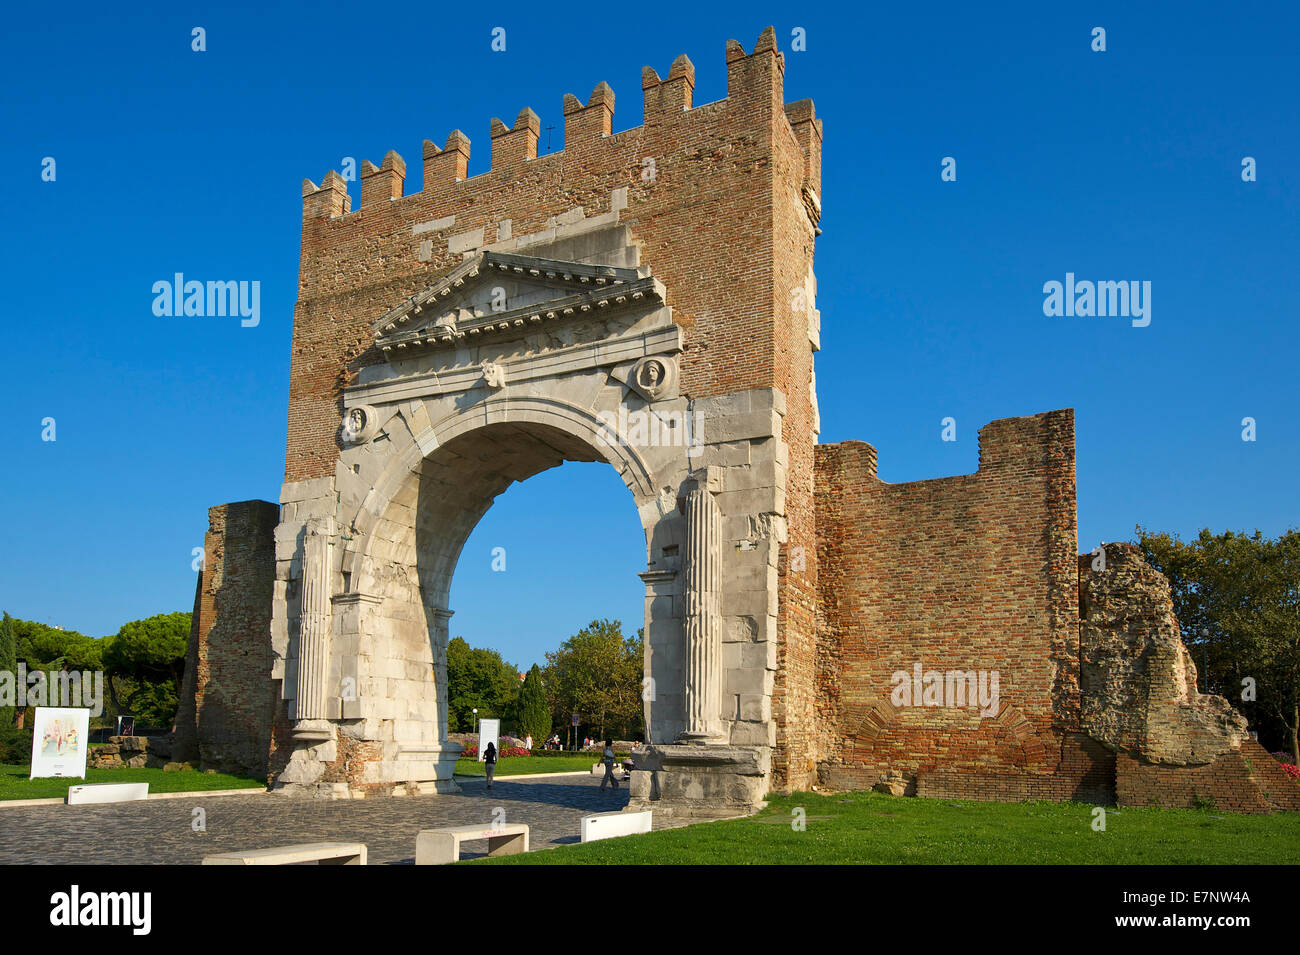 Adriatic, Italy, Europe, outside, day, nobody, Emilia-Romagna, Augustus arch, triumphal arch, building, architecture, - Stock Image